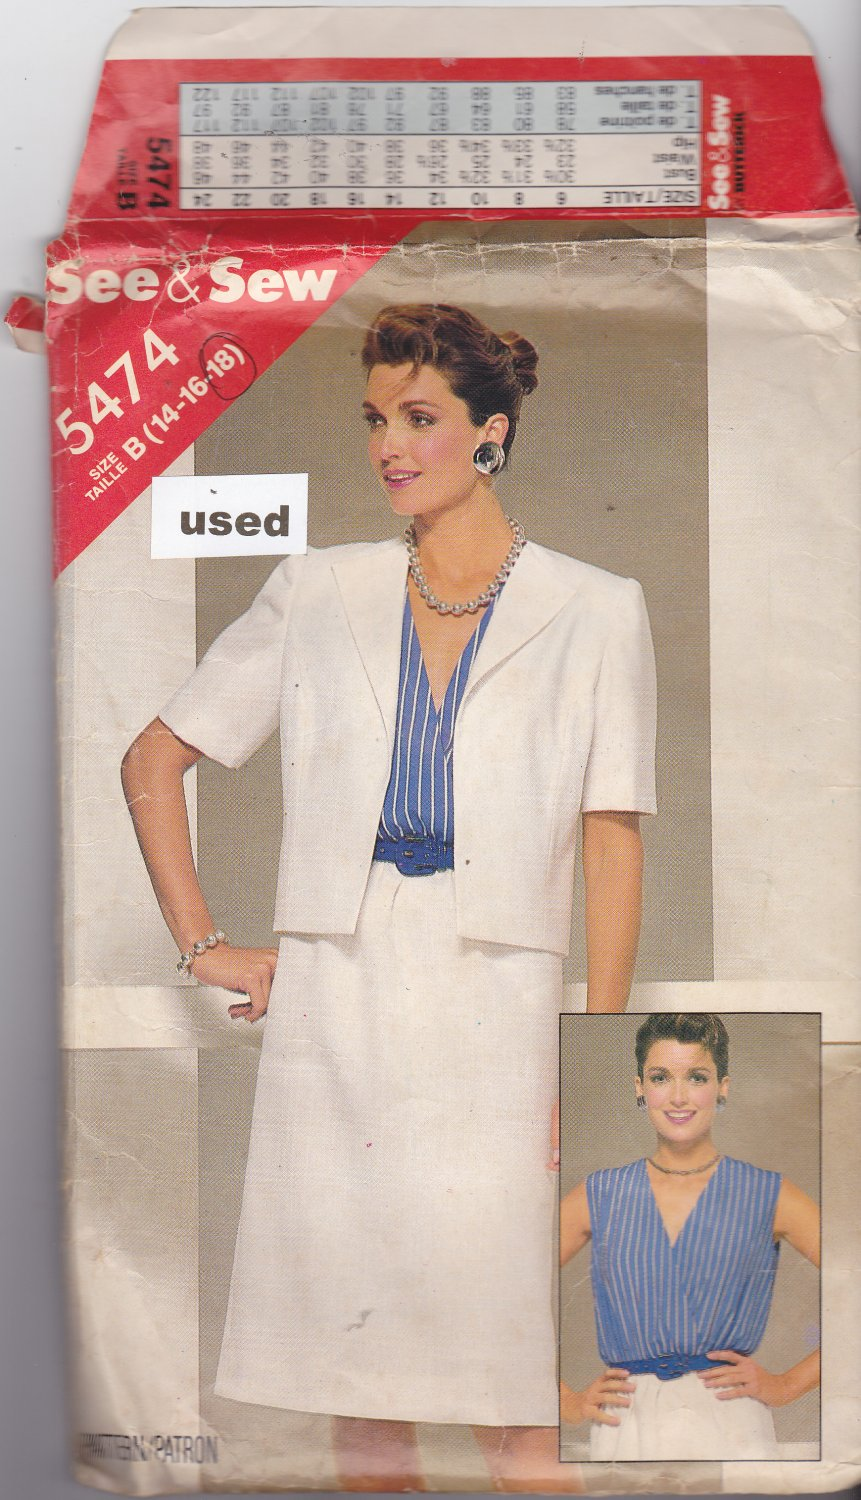 Butterick See and Sew 5474 size 18, may be missing pieces, 50 cents plus shipping